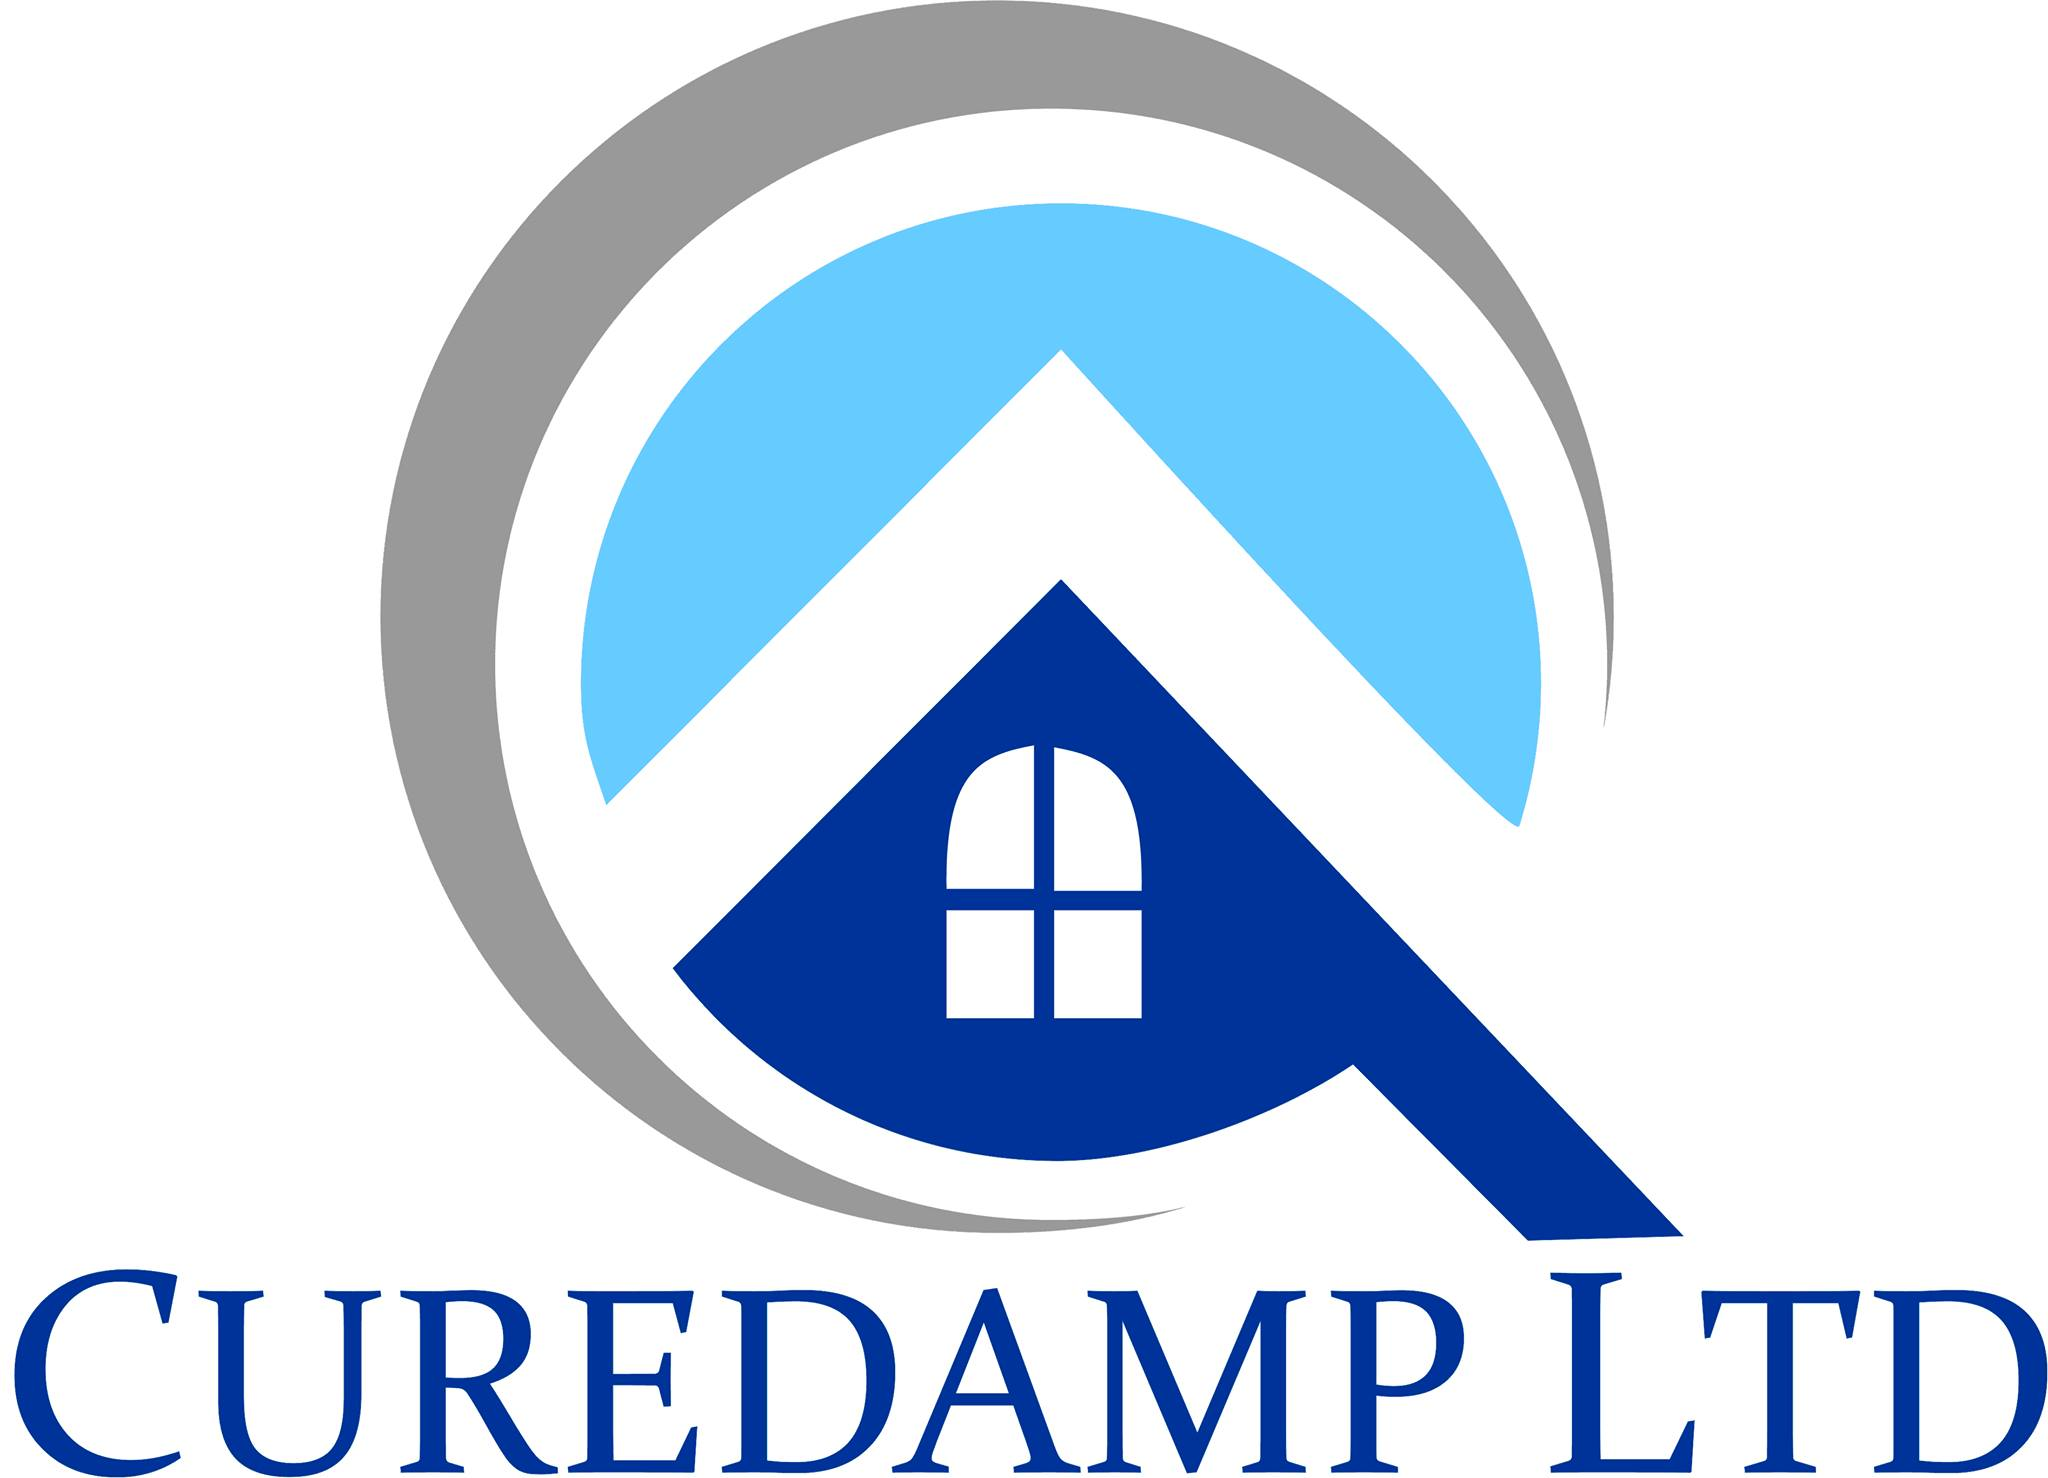 Curedamp Ltd. logo